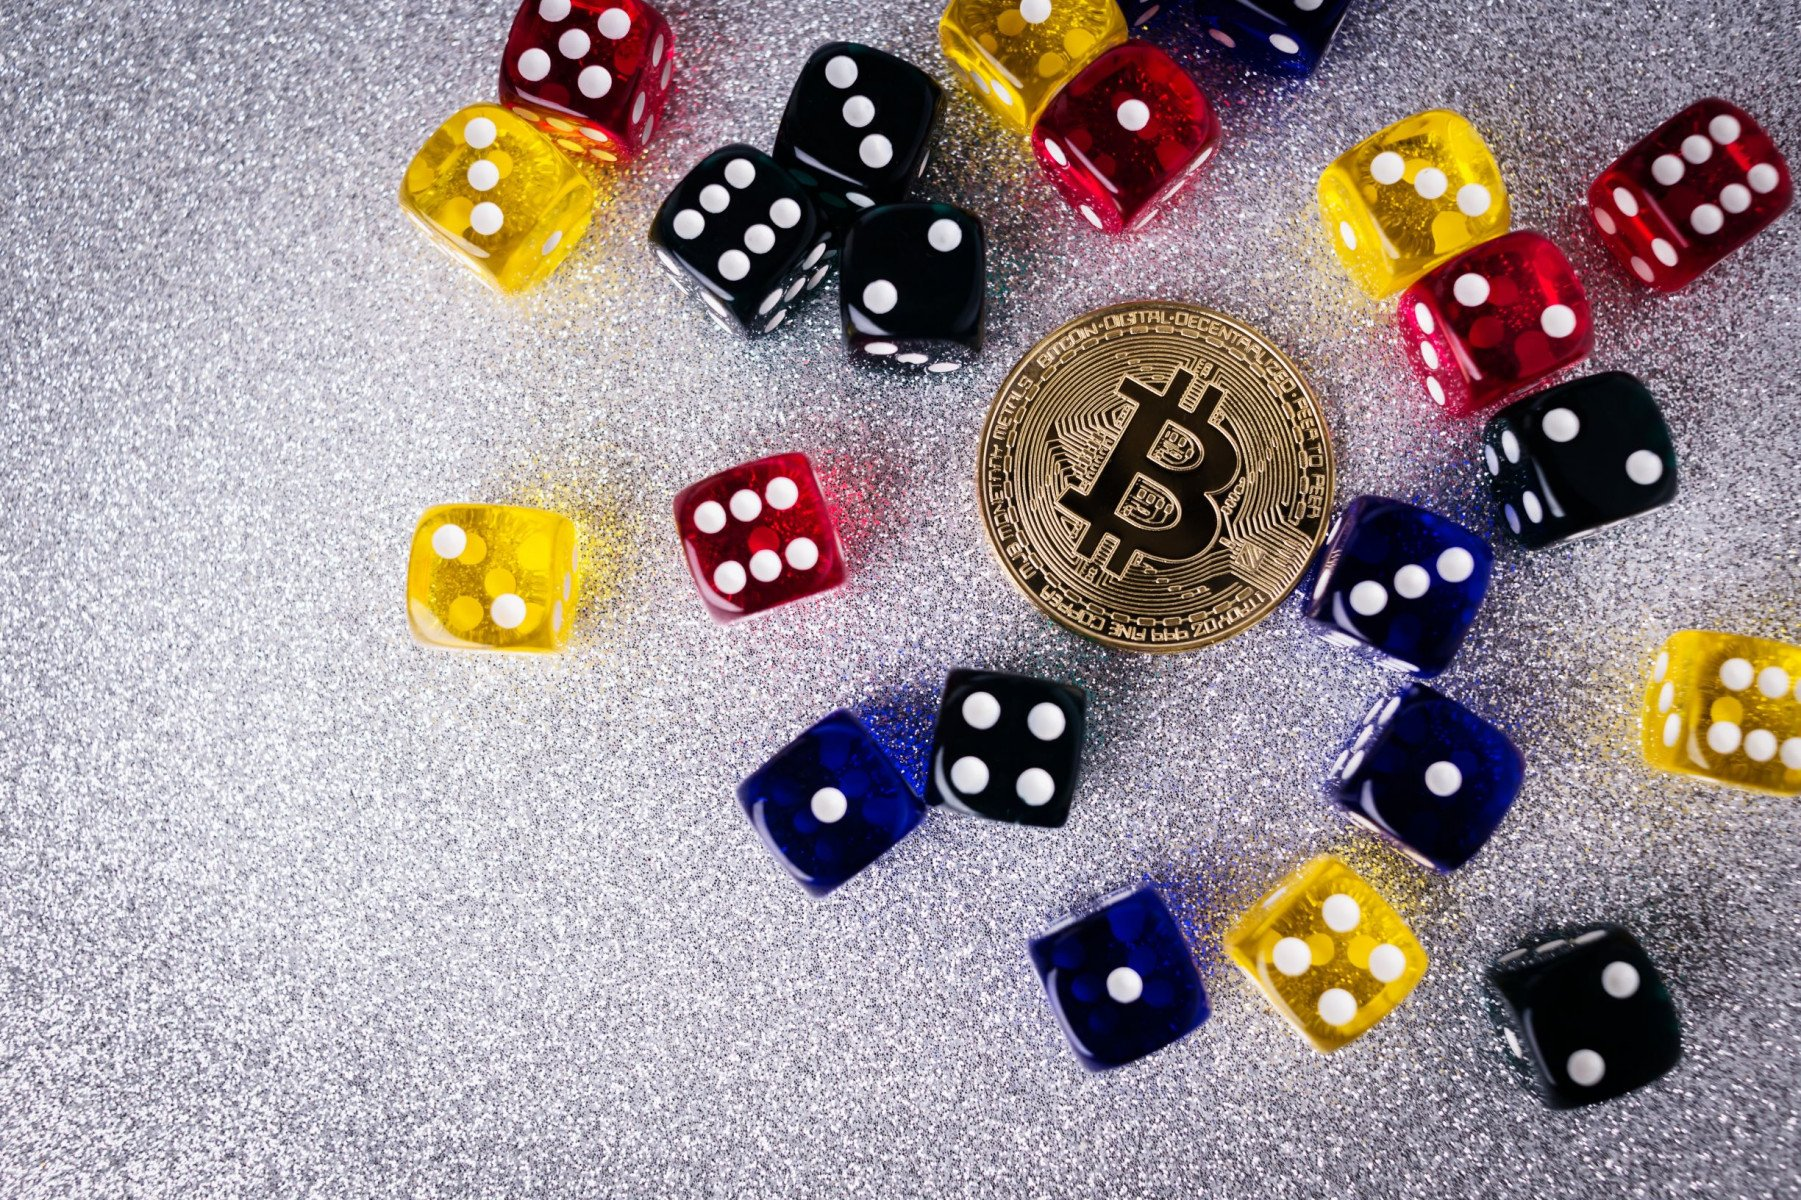 Blockchain: the next step in esports and gambling - Esports Insider